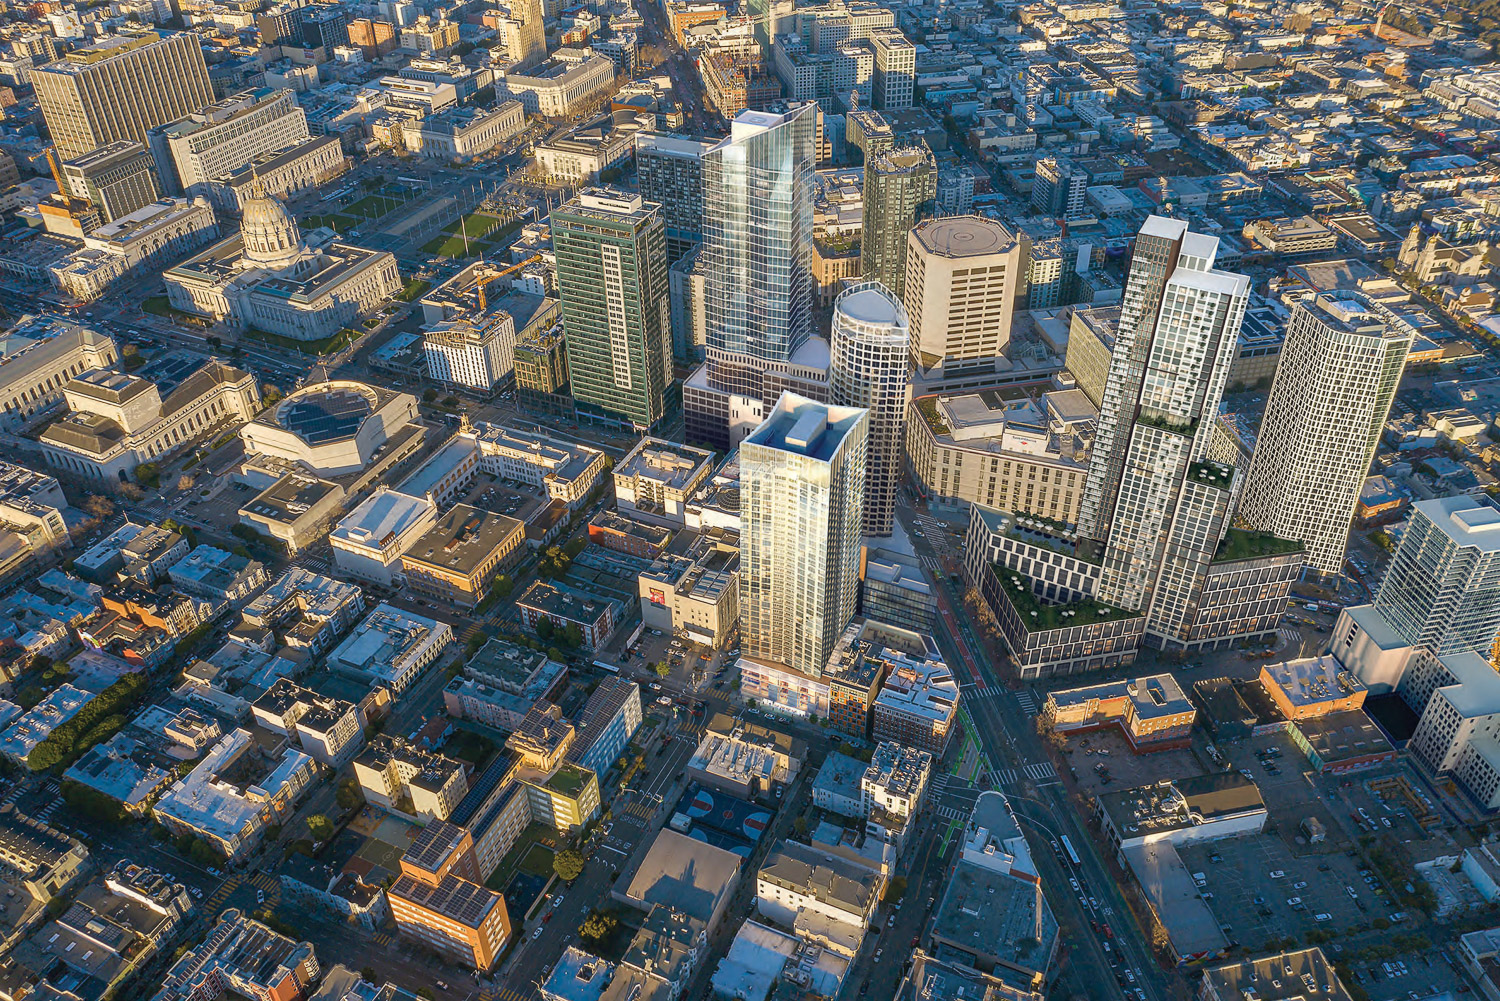 98 Franklin Street aerial view with 30 Van Ness at top left, One Oak adjacent , 10 South Van Ness as the massive project to the near right, and the complete 1550 Mission at far right, rendering by Skidmore Owings & Merrill